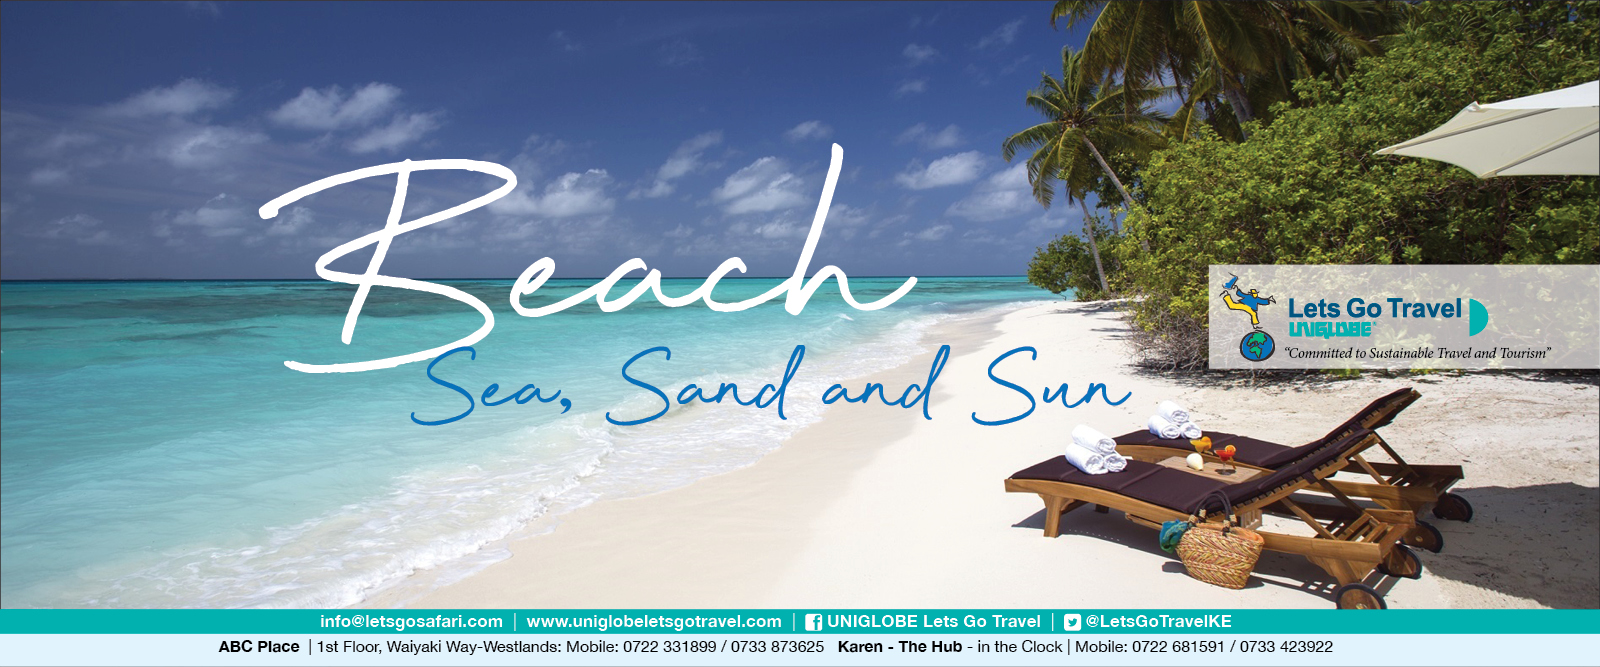 Lets Go Travel - THE Beach, Sea, Sand and Sun Specialist across East Africa!